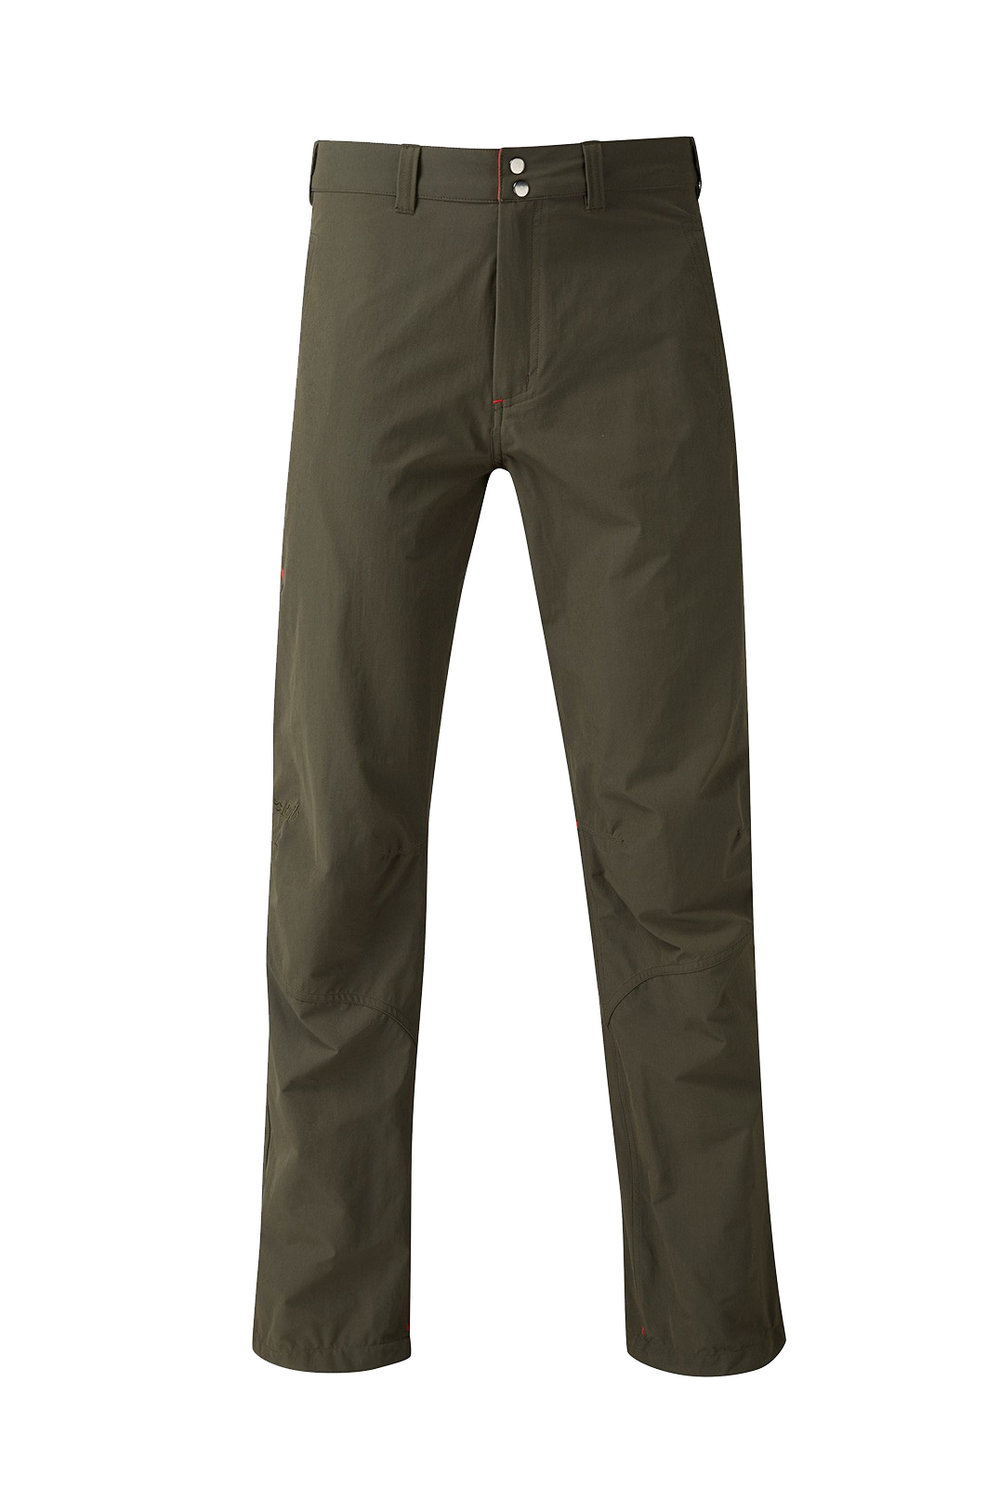 Whilst the Vertex Pants can be worn as general outdoor trousers, climbing specific features such as a hem drawcord for reducing volume around your feet, and stretch fit articulated knees for freedom of movement, make the Vertex Pants ideal for use as a light-weight climbing pant.